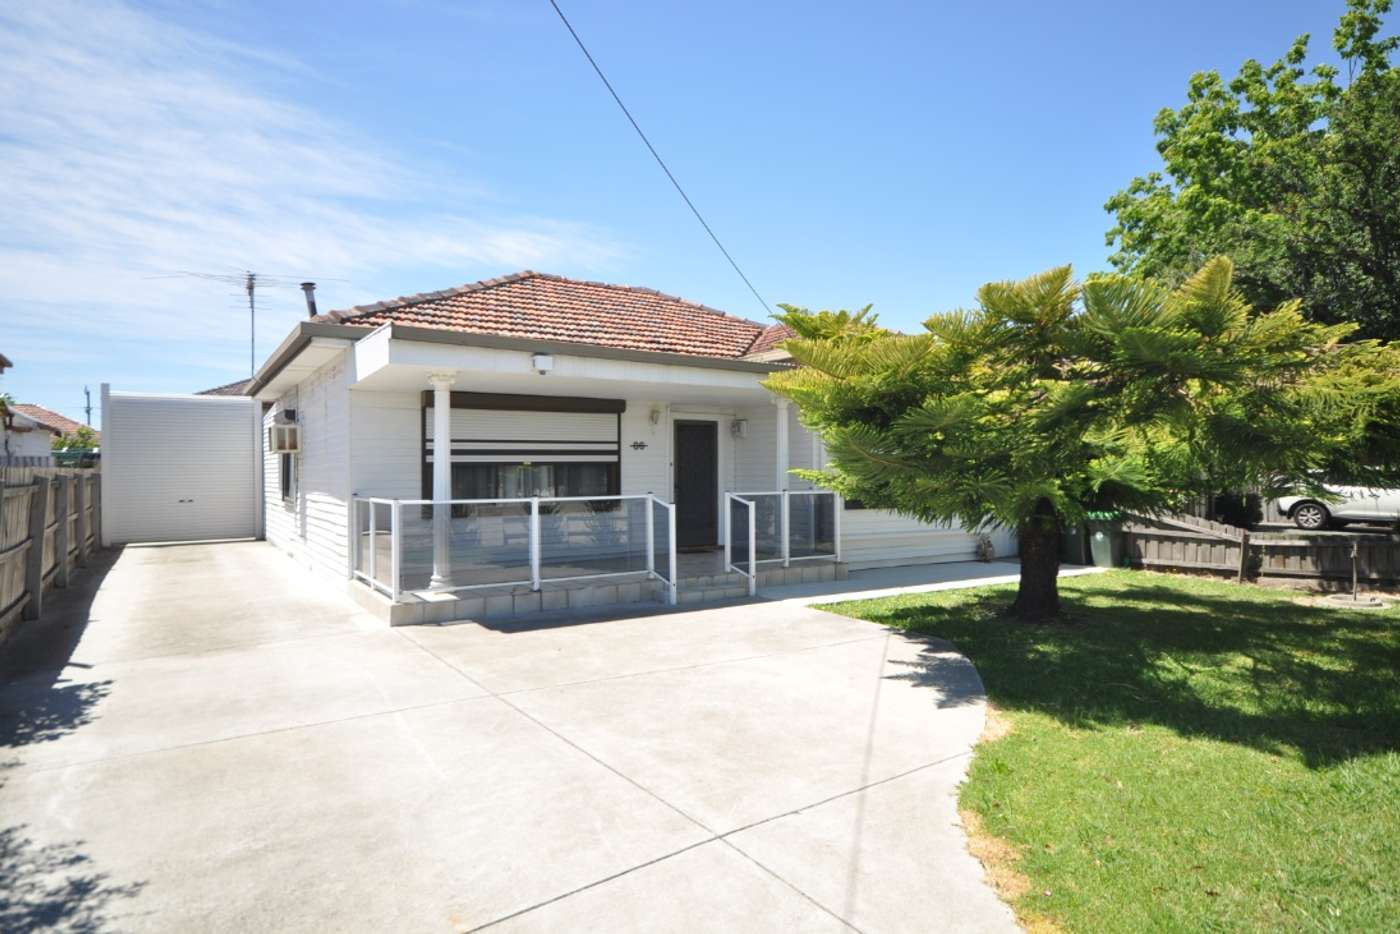 Main view of Homely house listing, 86 Reynolds Parade, Pascoe Vale South VIC 3044